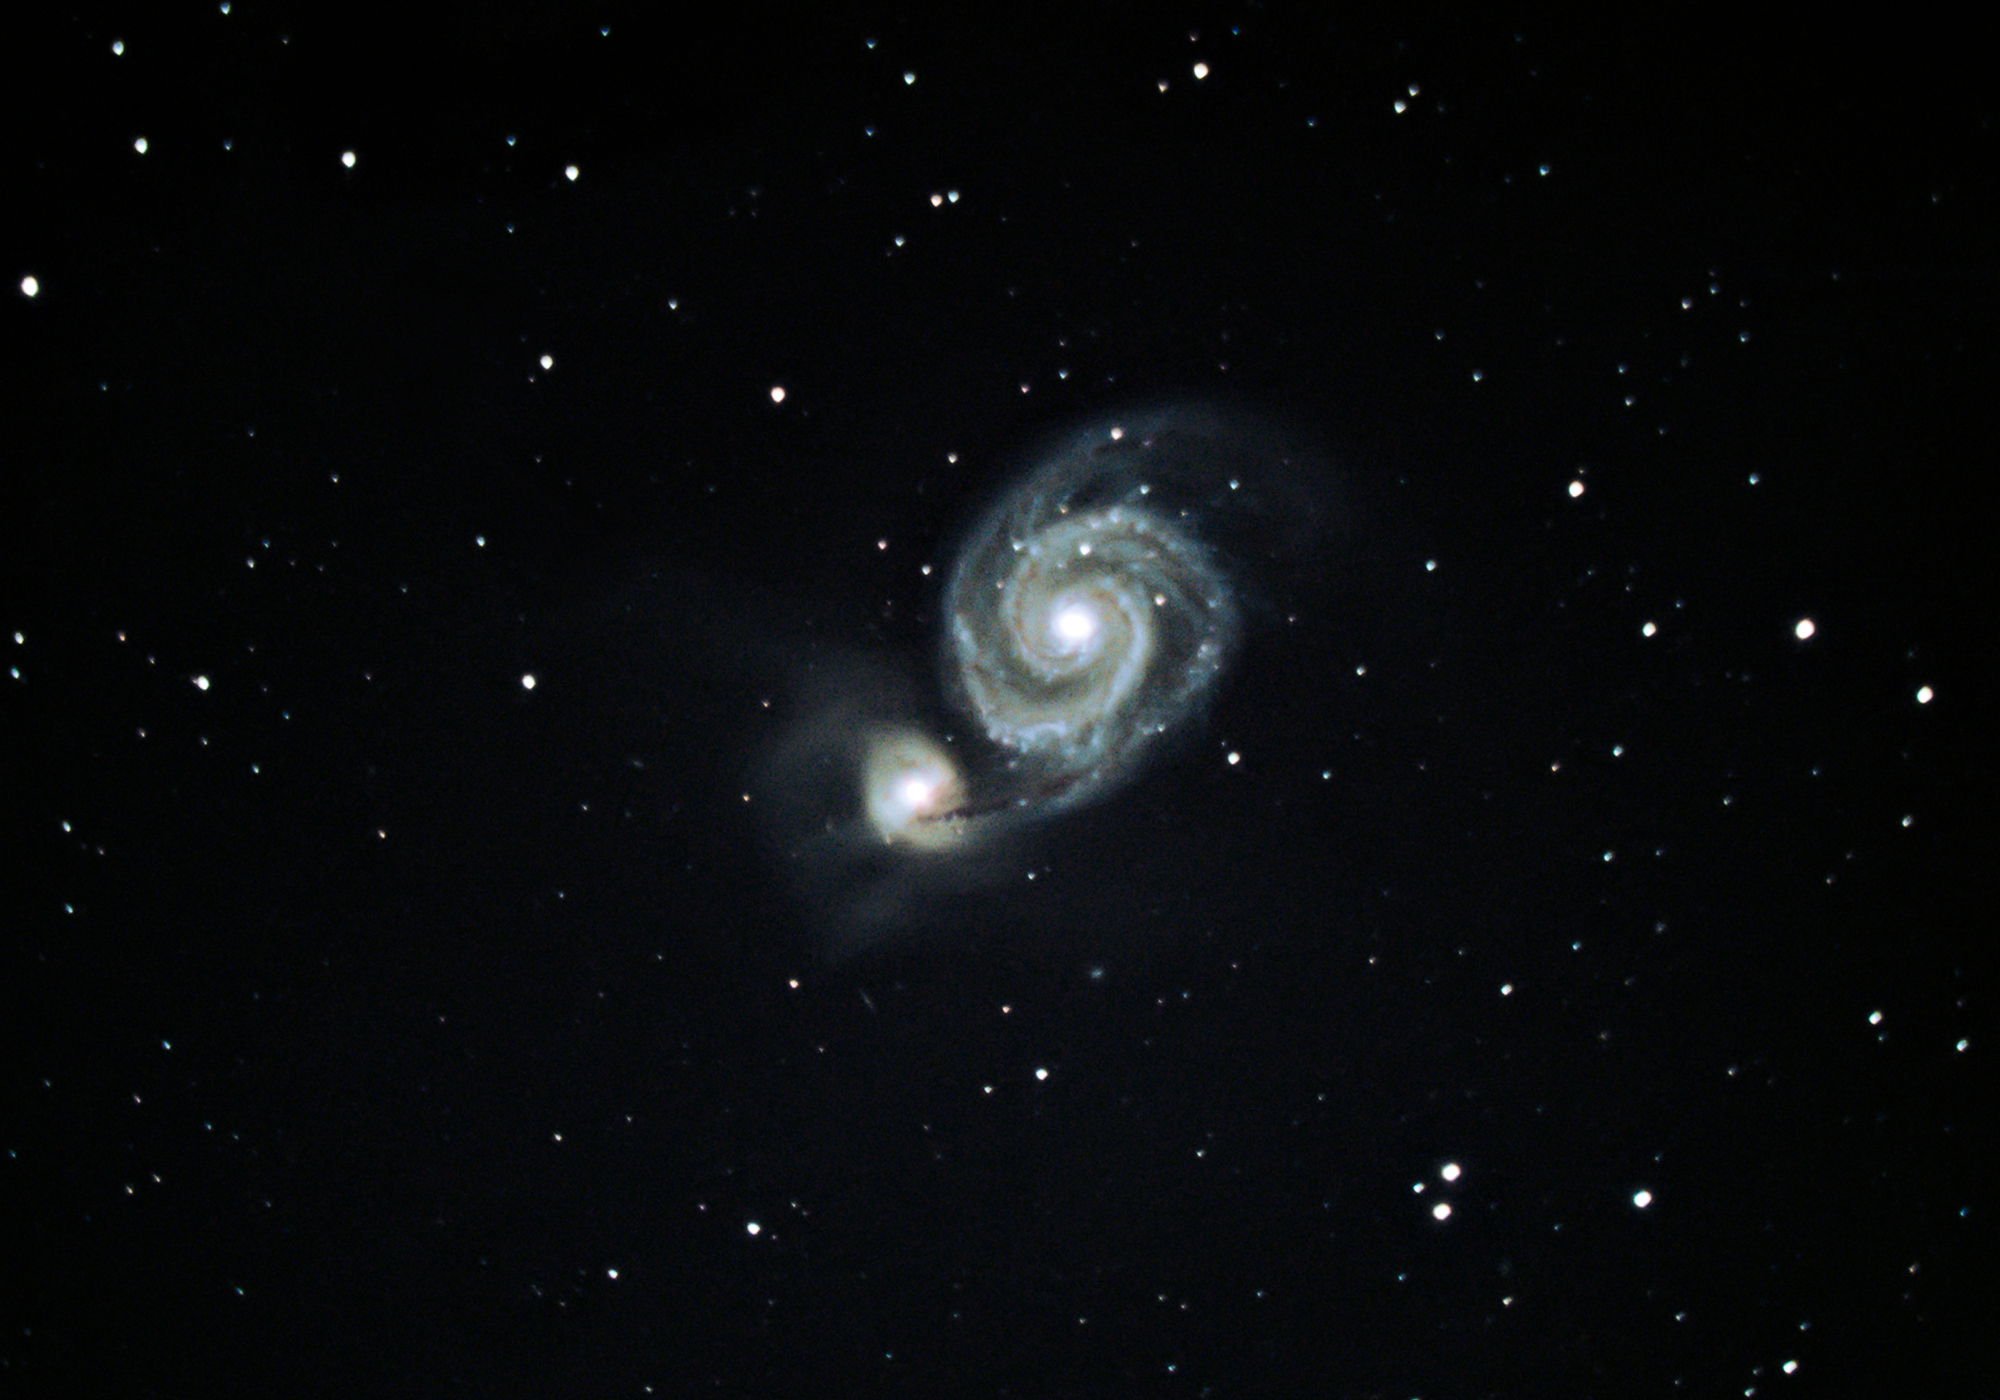 Messier 51 – The Whirlpool Galaxy